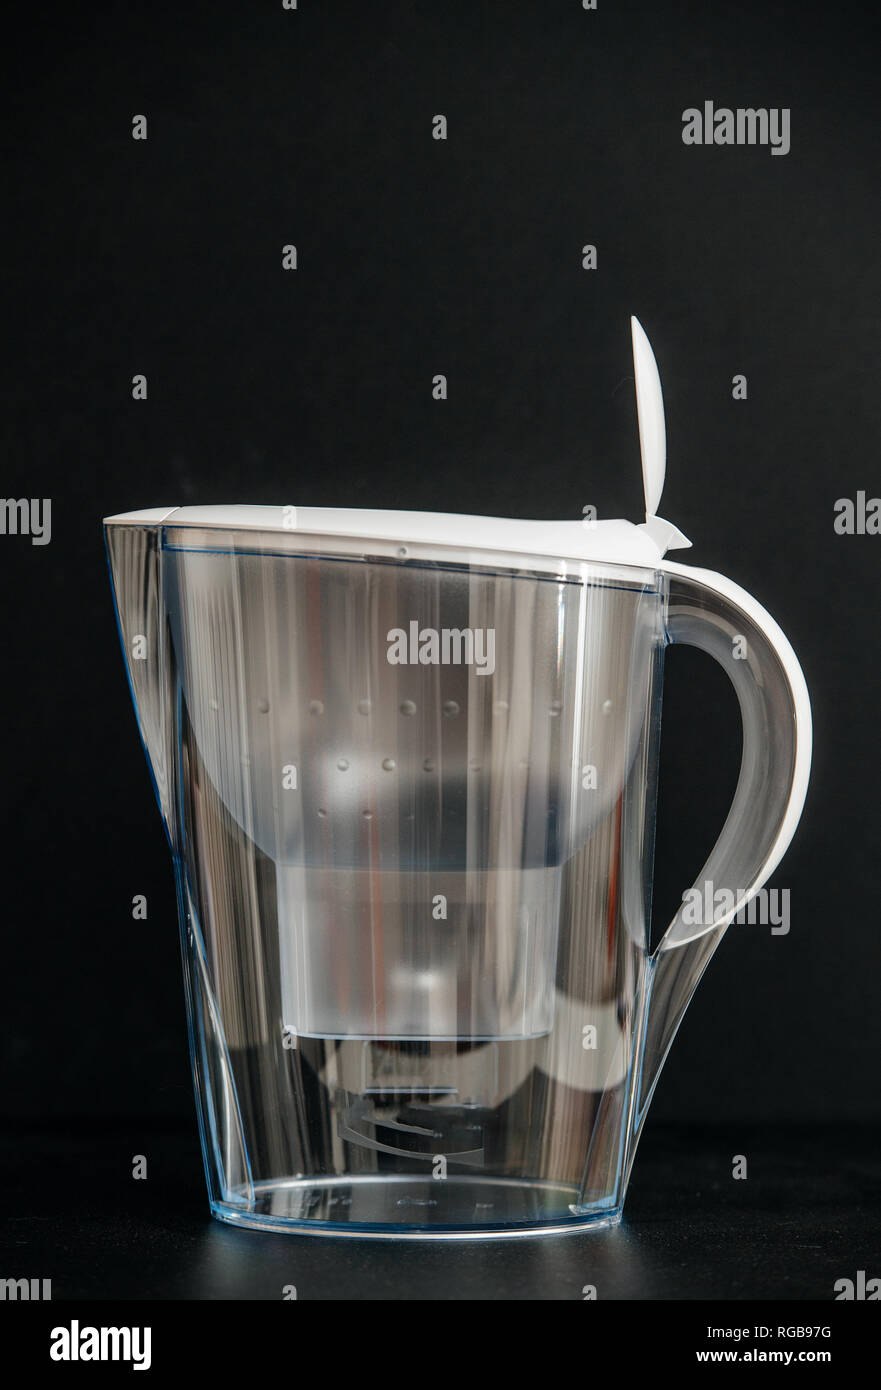 New water filter with opened plastic lid against black background - Stock Image